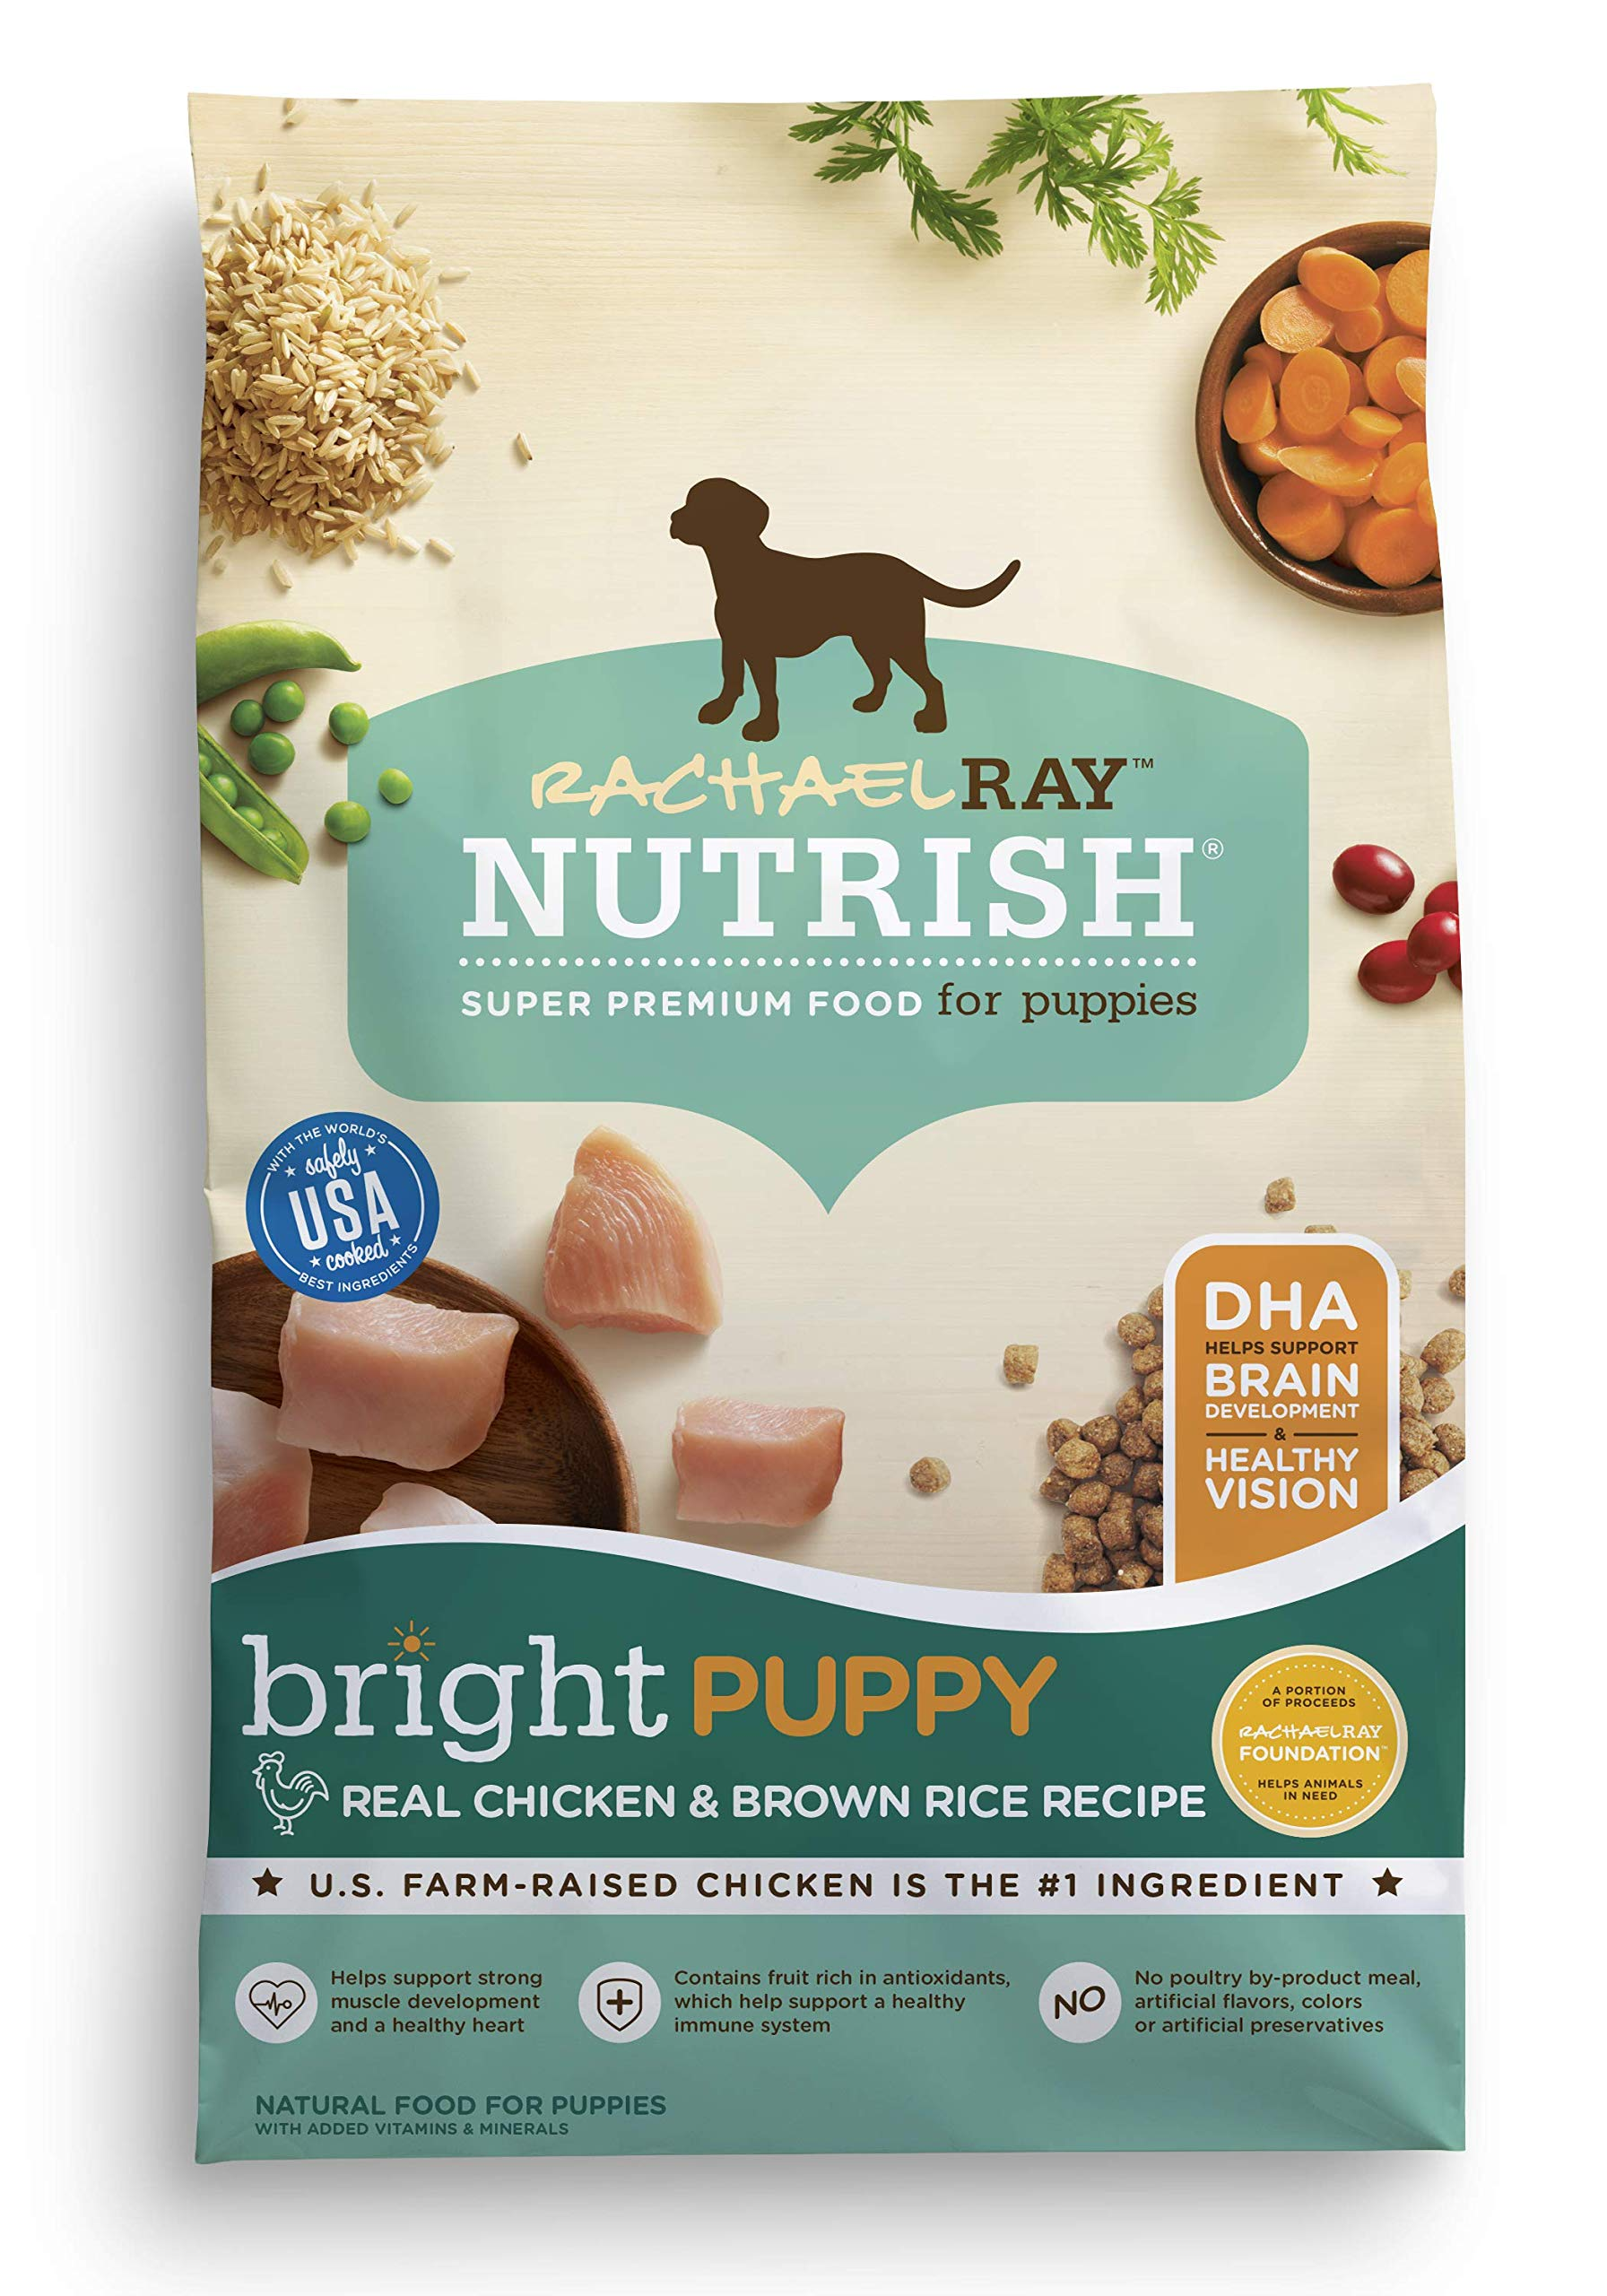 Rachael Ray Nutrish Bright Puppy Natural Dry Dog Food, Real Chicken & Brown Rice Recipe, 14lbs